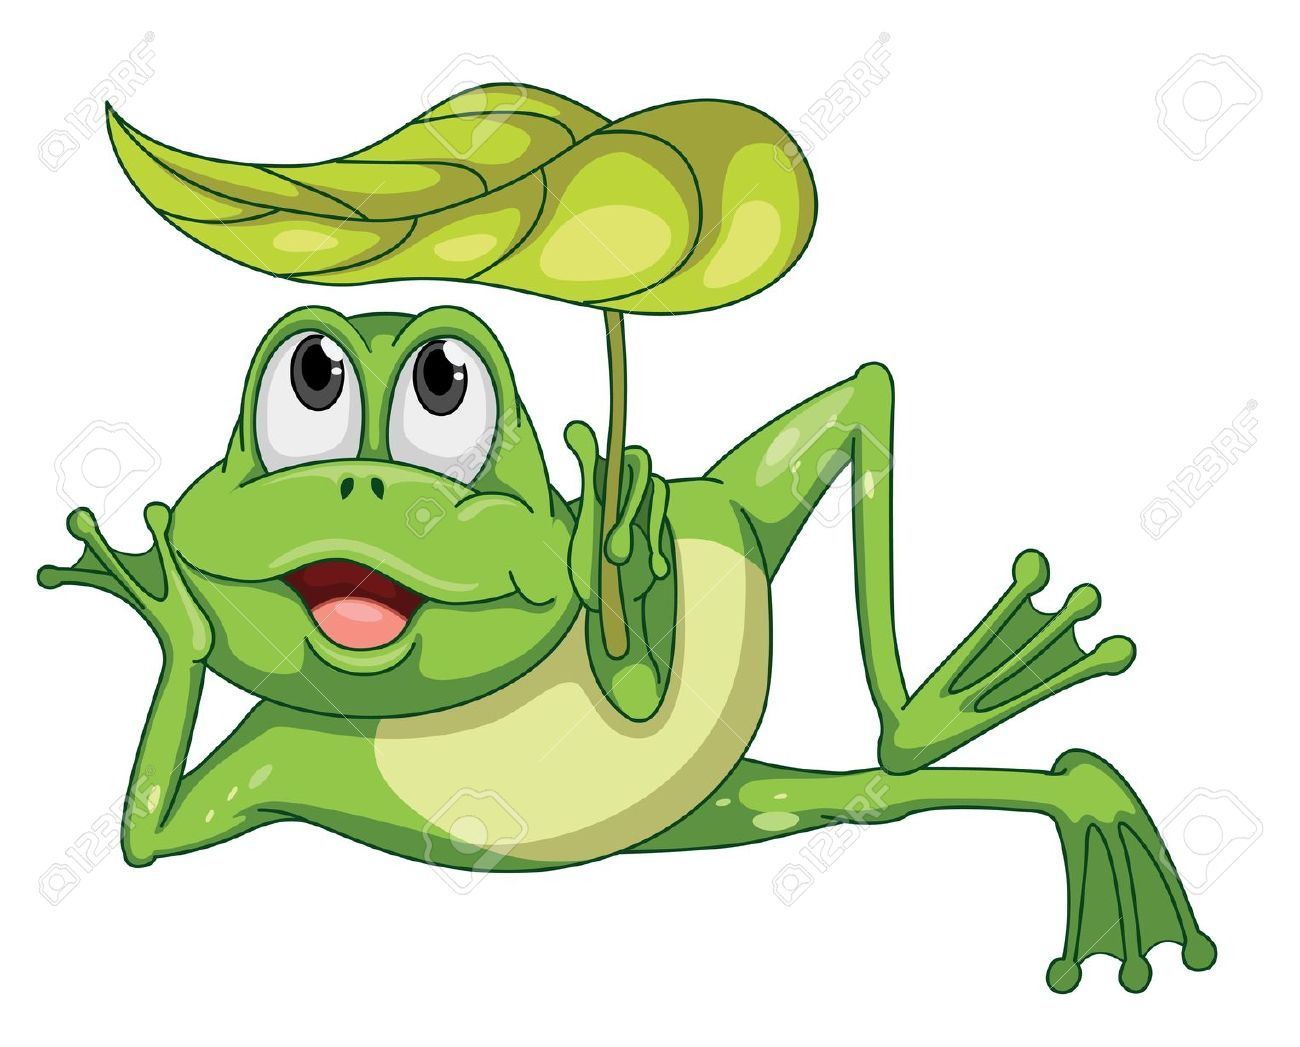 Detailed Illustration Of A Green Frog And A Leaf Frog Illustration Frog Cartoon Images Cute Frogs